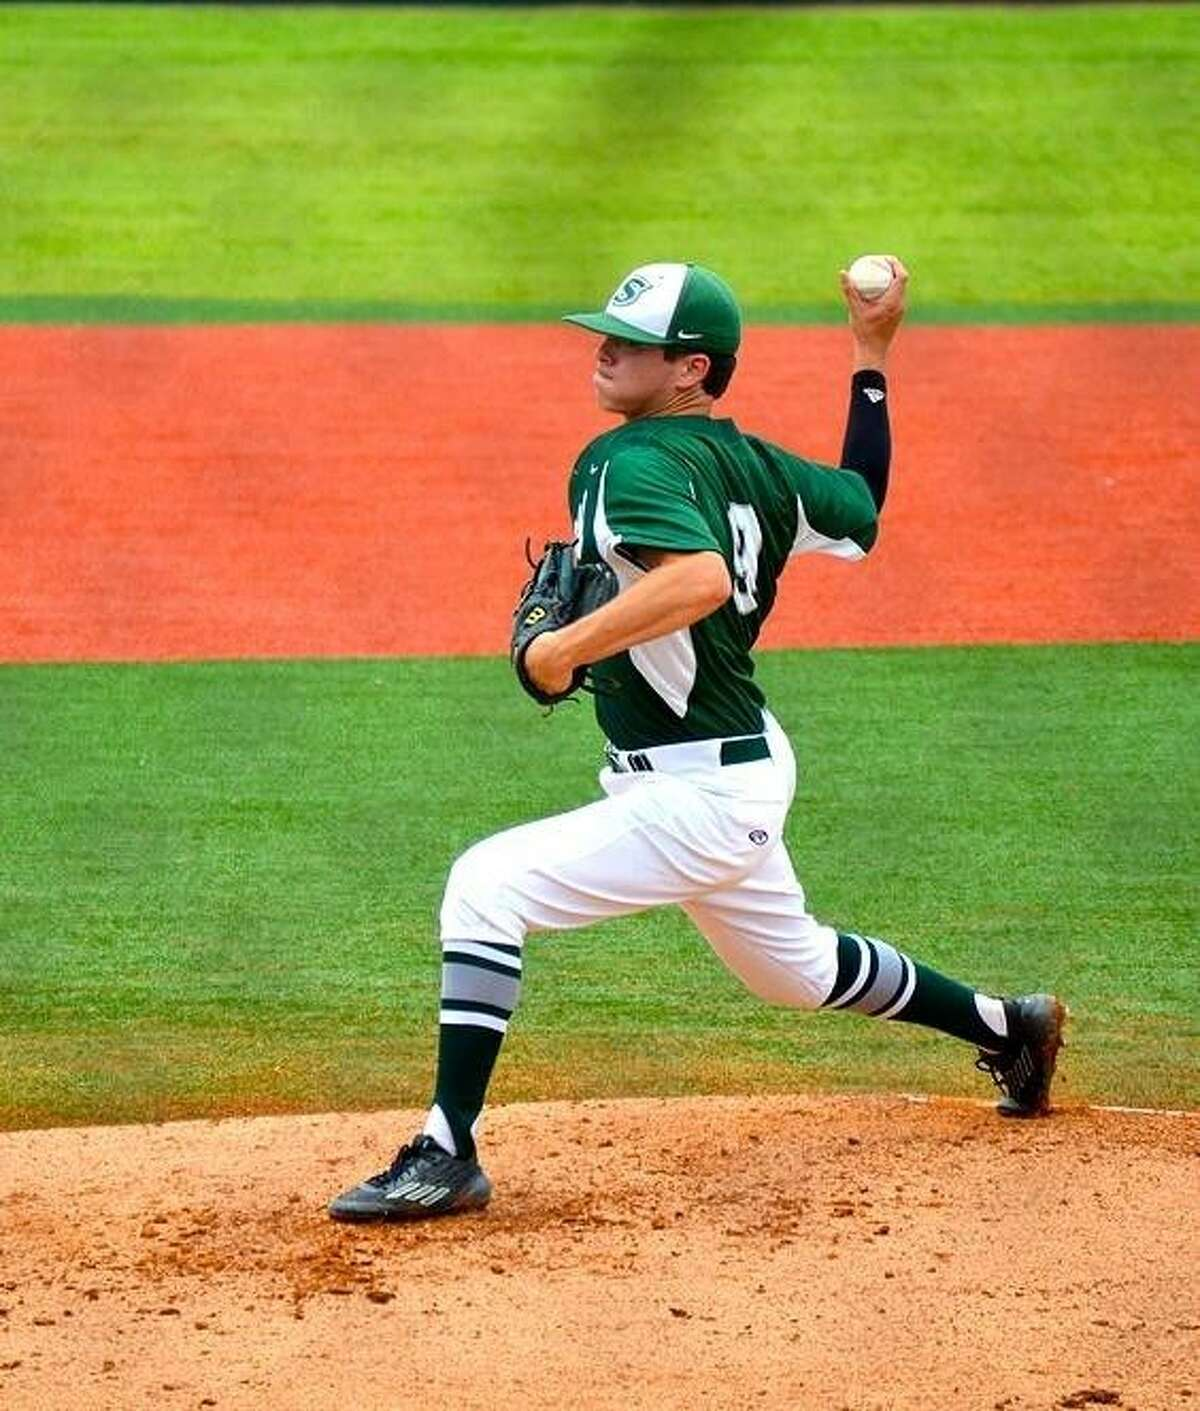 Lutheran South Academy pitcher Evan McDonald, a Houston Baptist University commit, was part of a strong pitching staff for the Pioneers which included Pablo Salazar and Christian Dick.